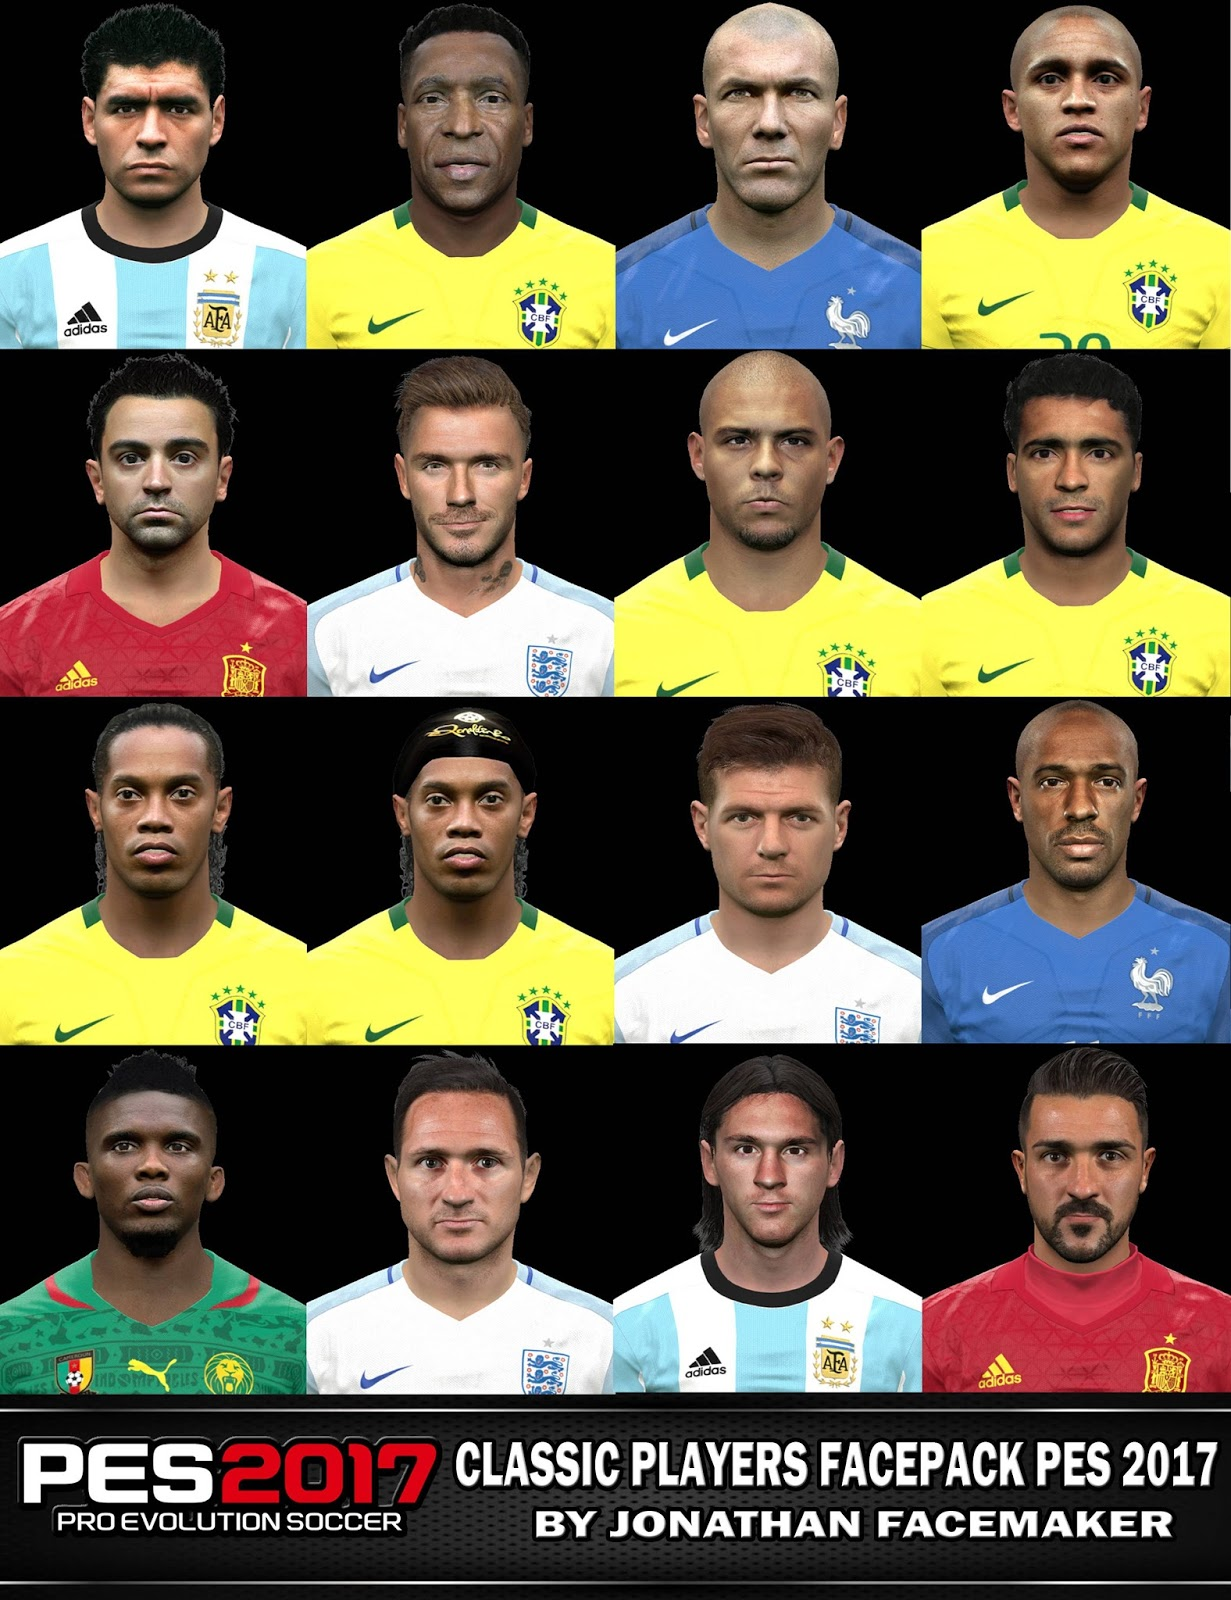 Classic Players Facepack PES 2017 by Jonathan Facemaker c7aaf228f